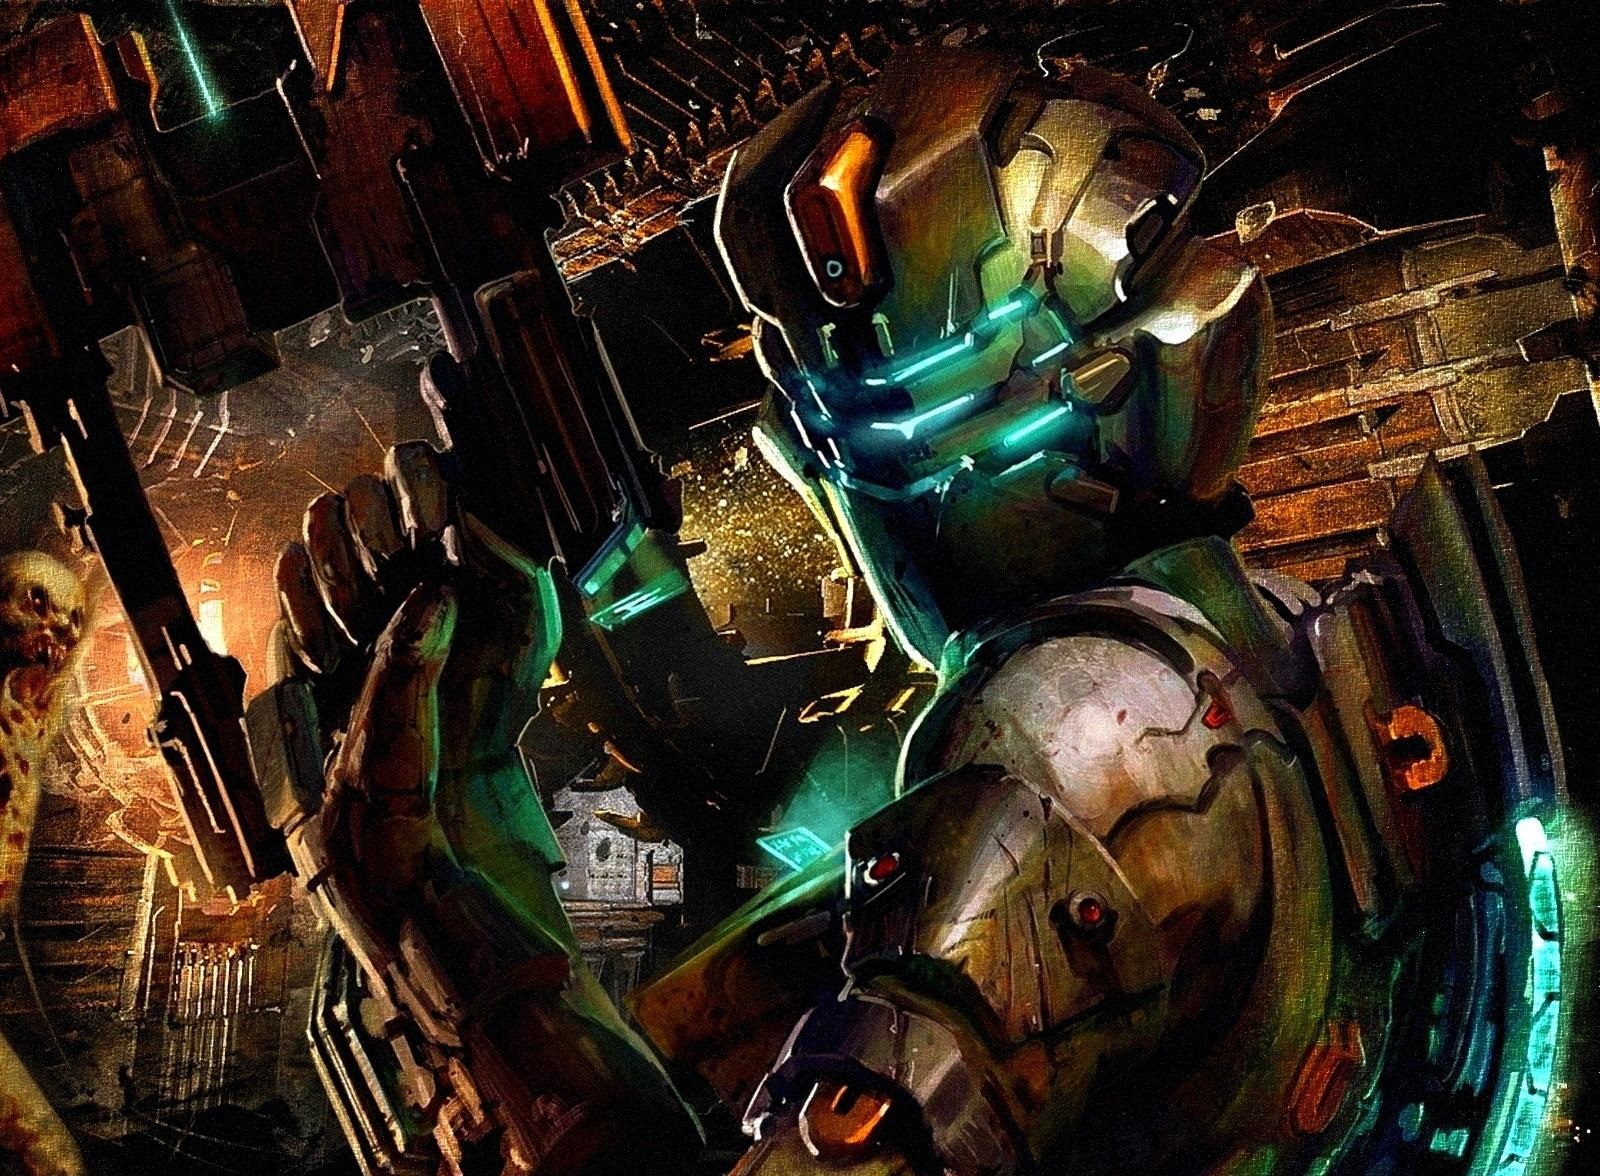 Dead Space 2 Game Art wallpaper 1600x1176   Fondo hd 2666 1600x1176